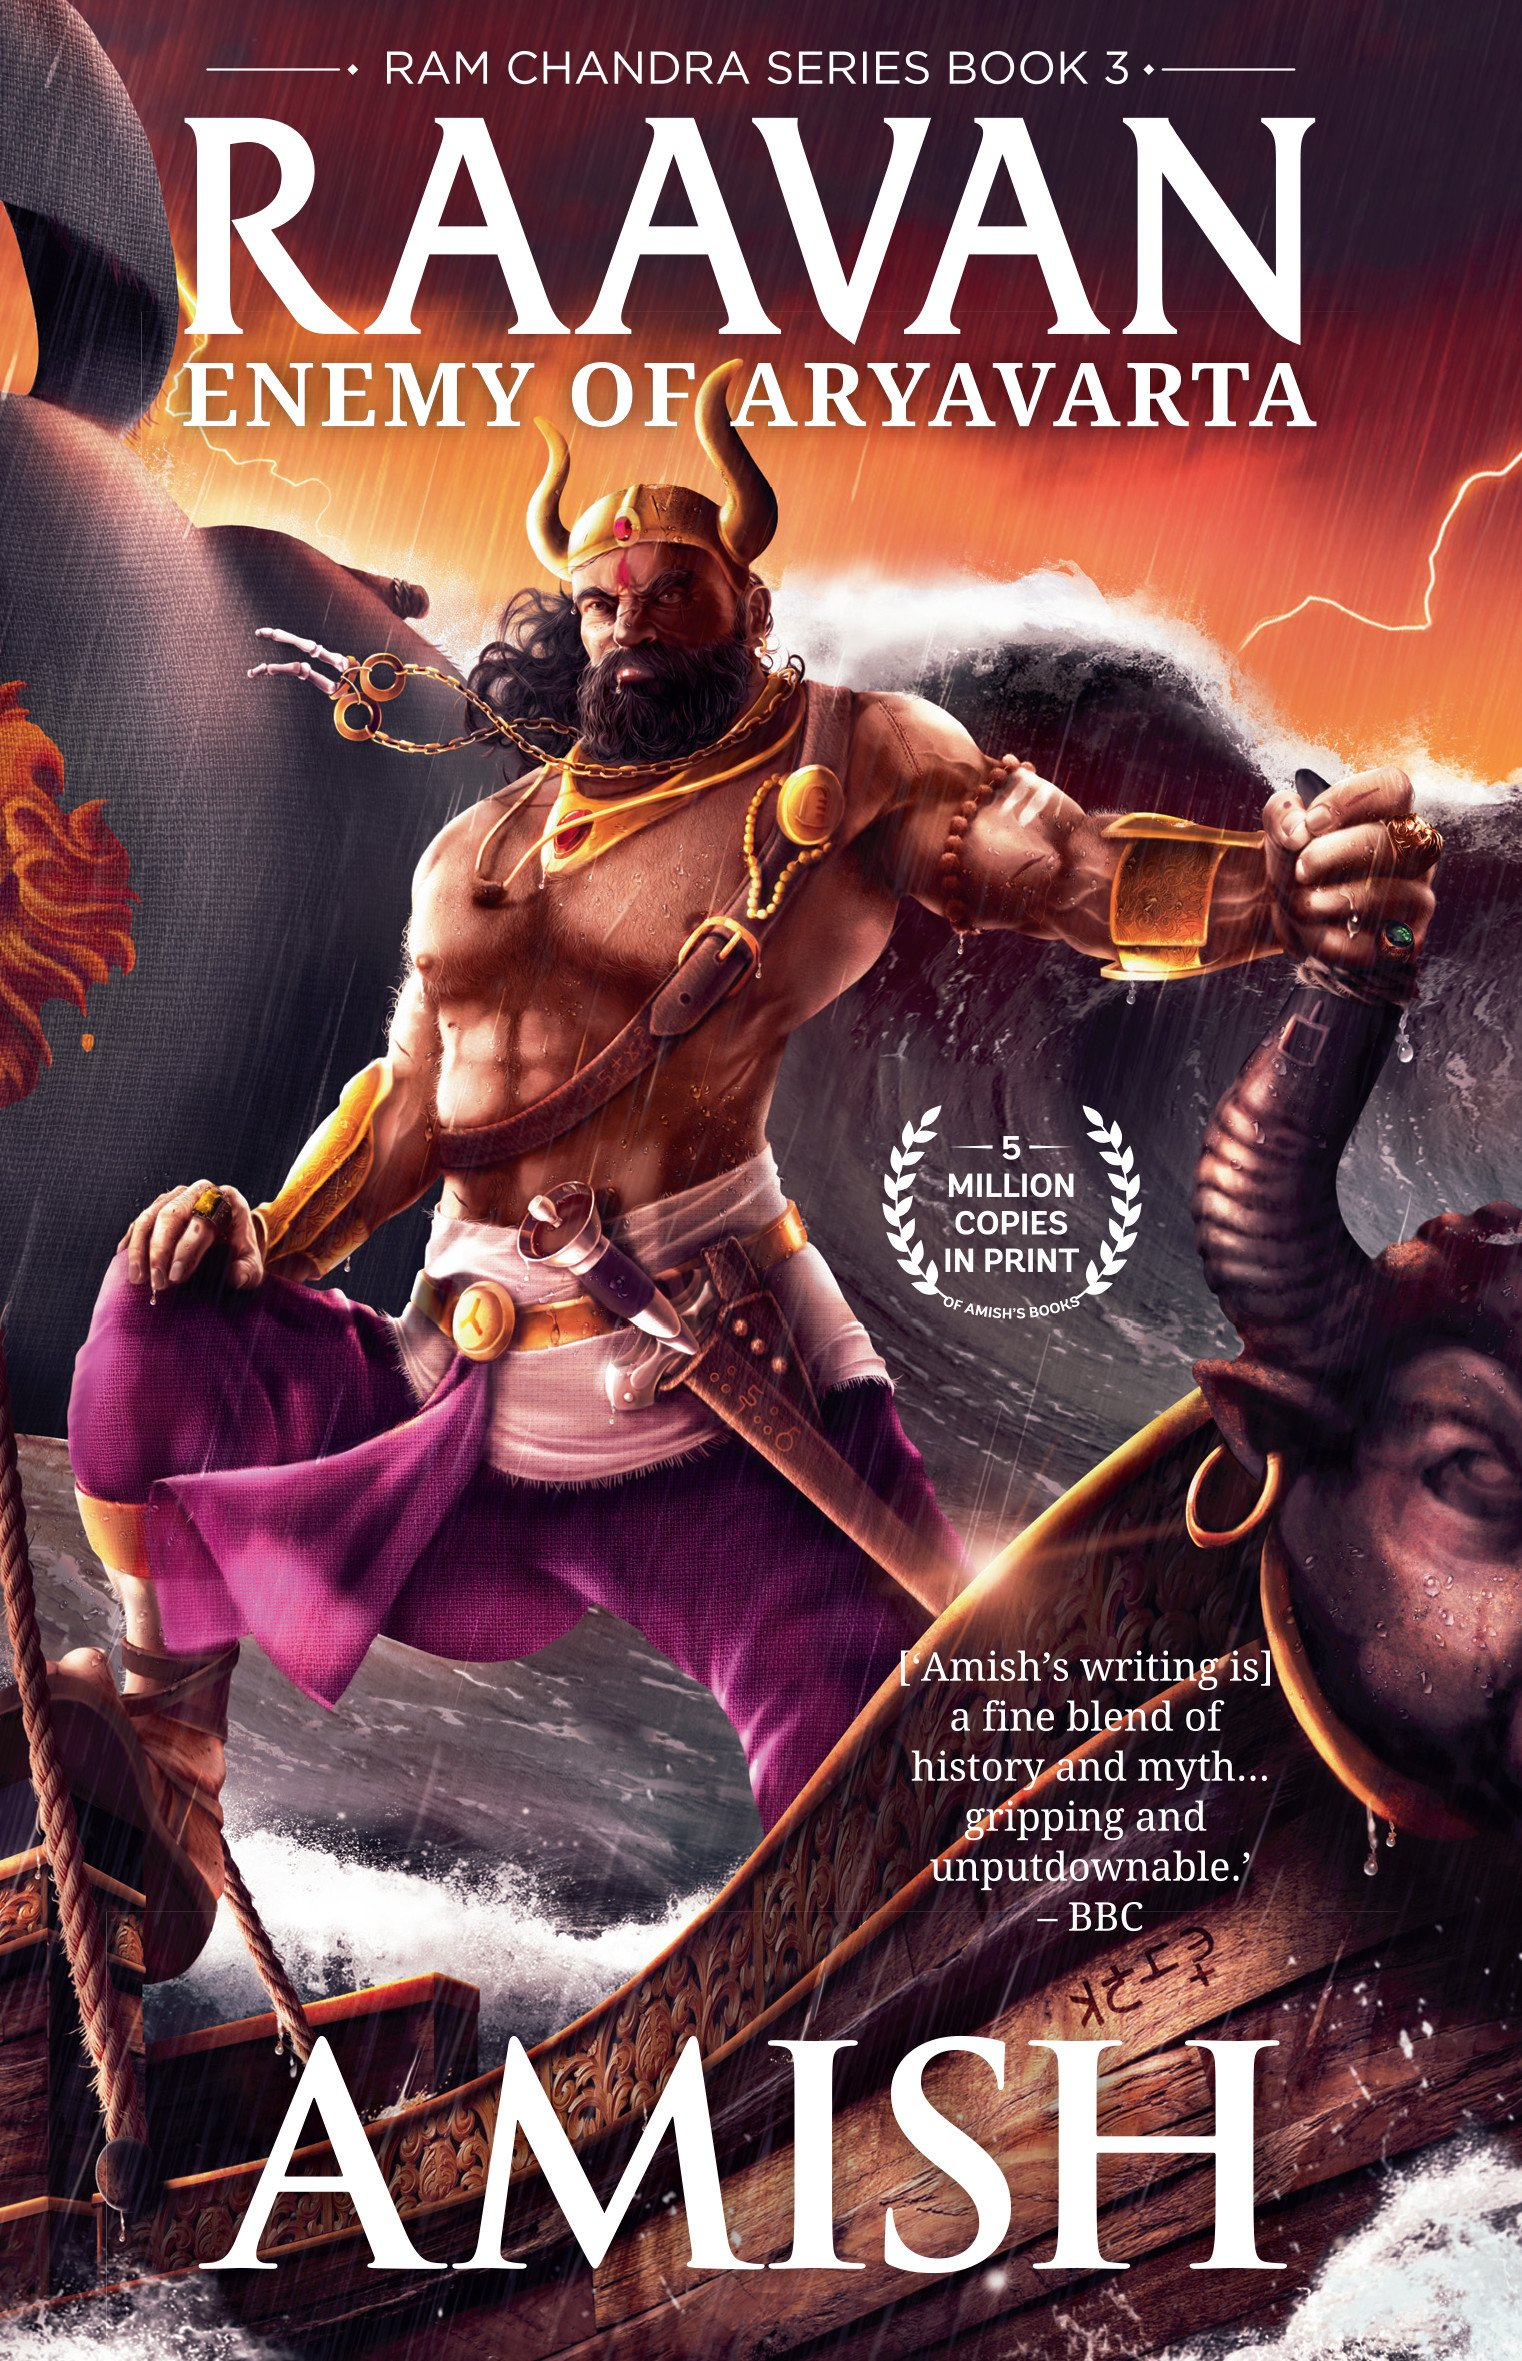 Zoya Akhtar unveils the cover of Amish's upcoming blockbuster – Raavan-Enemy of Aryavarta